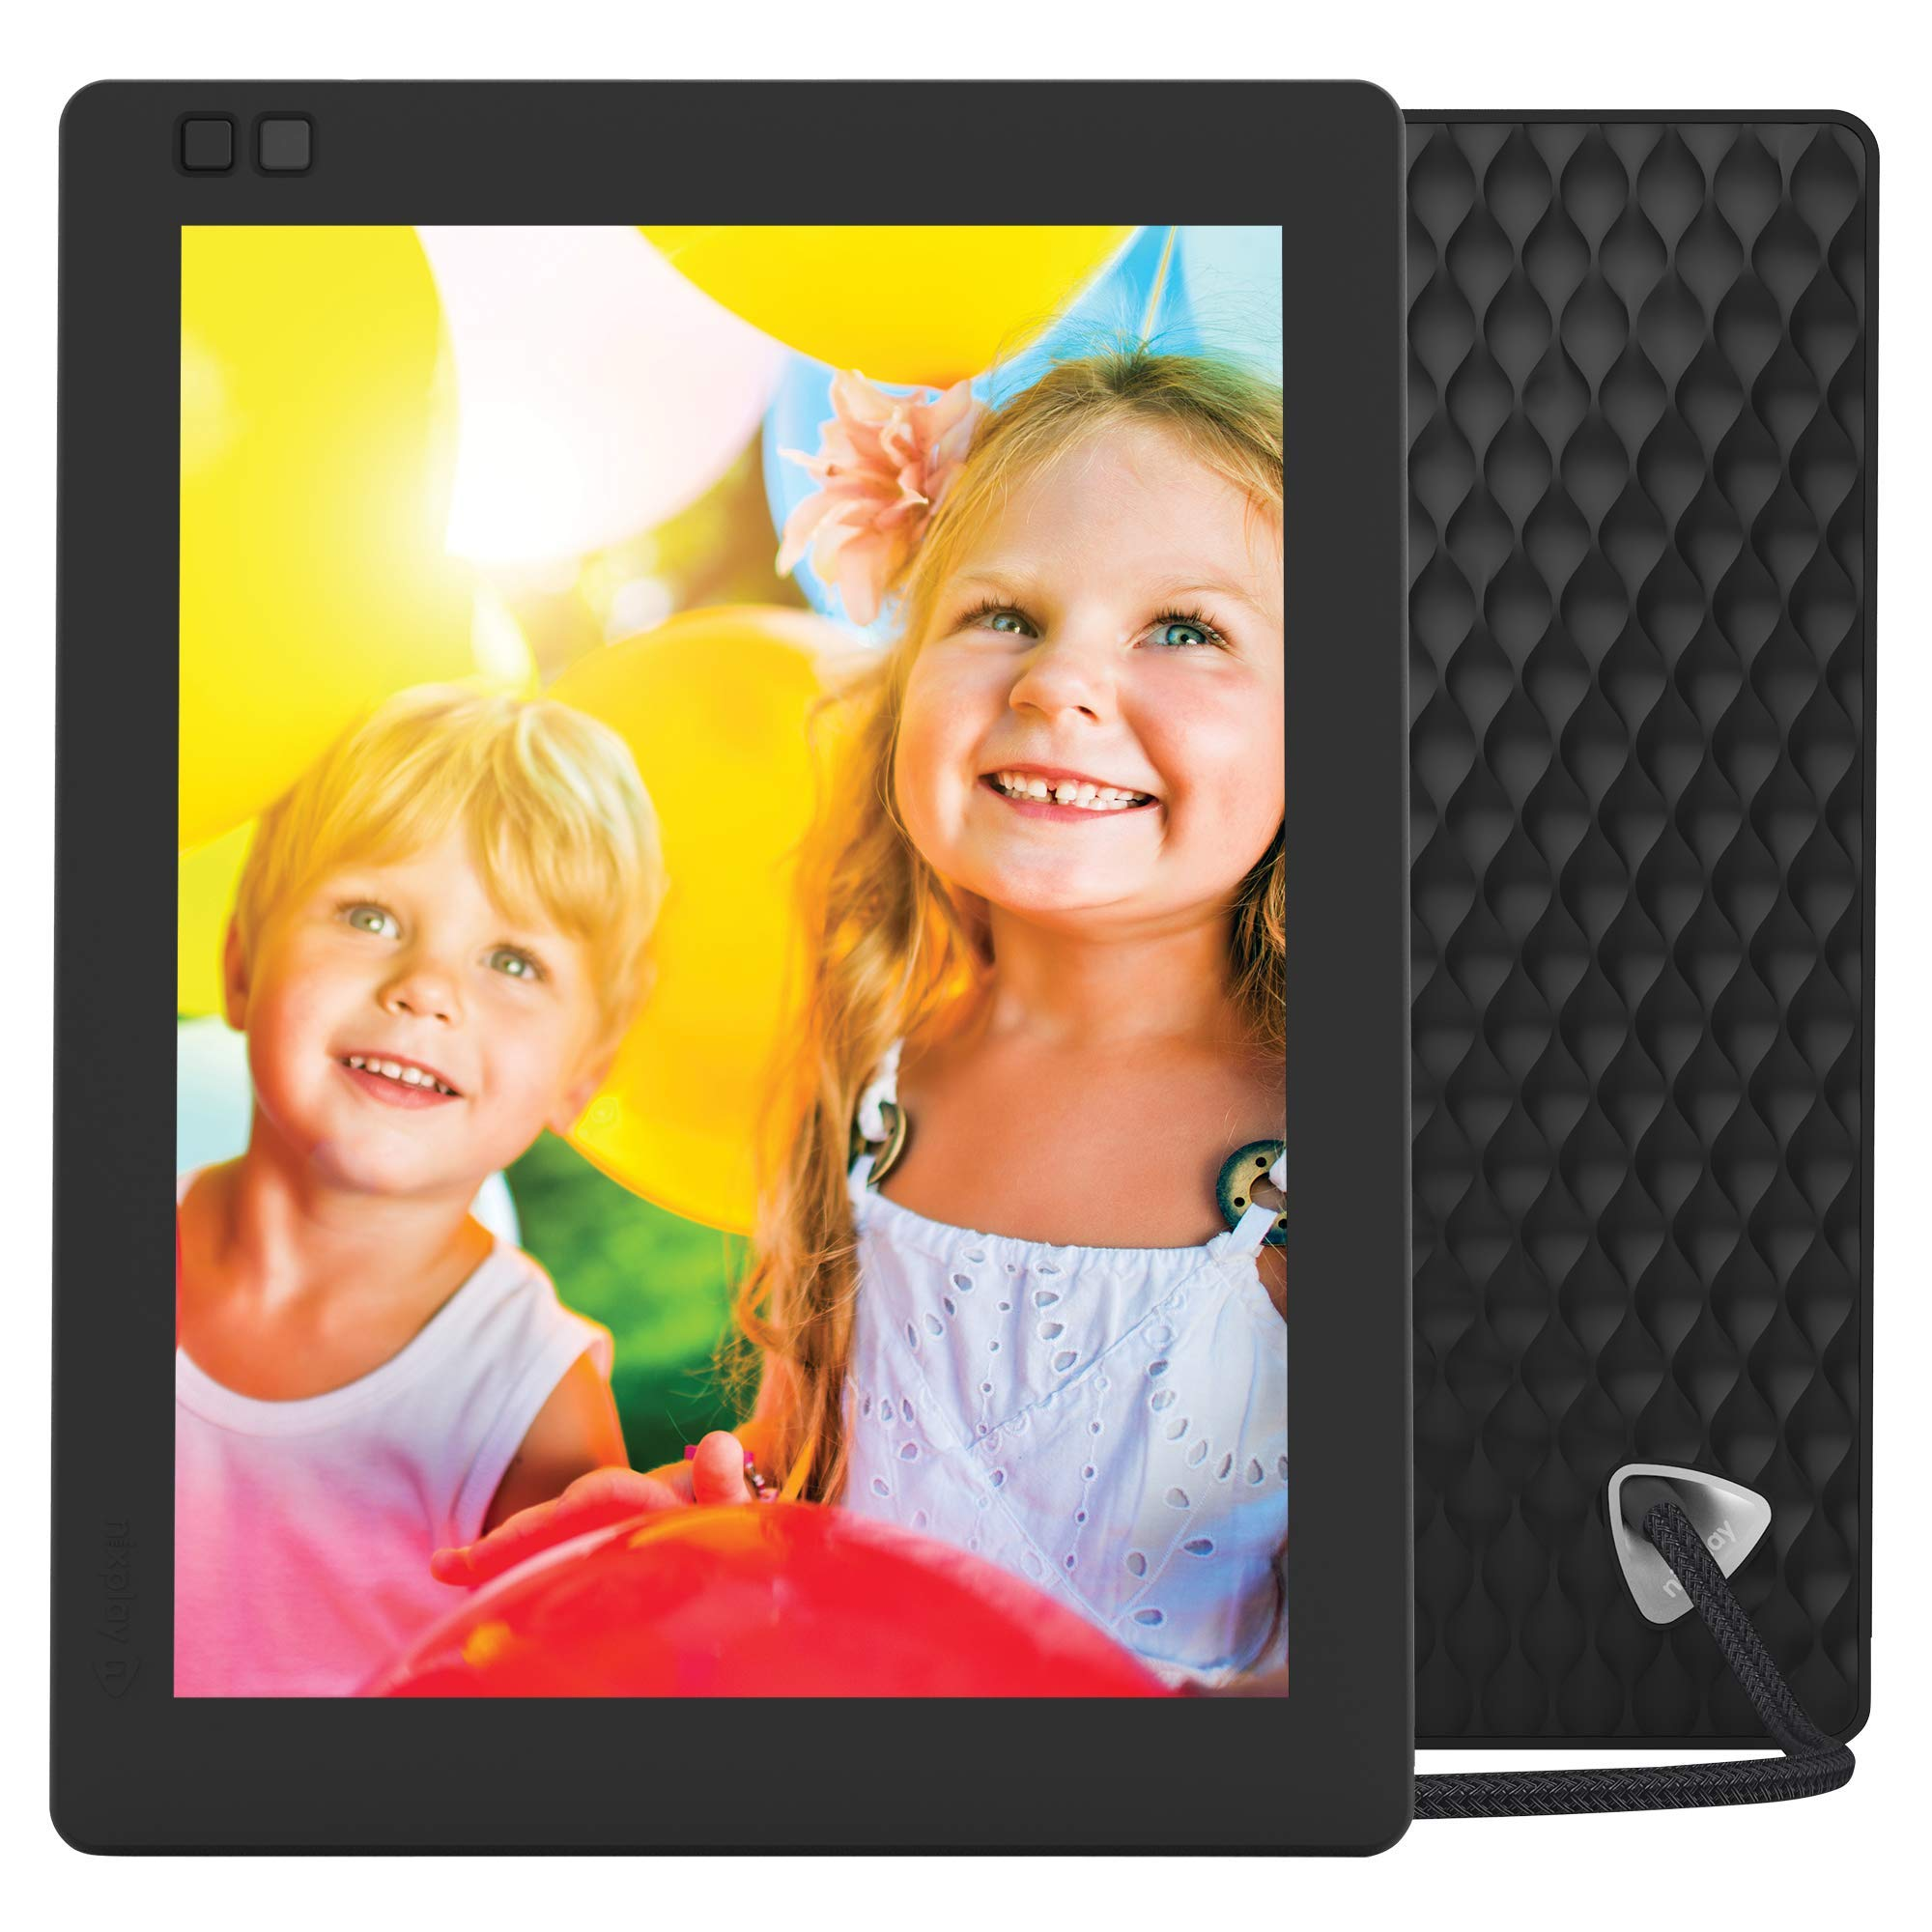 Nixplay Seed Ultra 2K High Definition Wi-Fi 10 Inch Digital Picture Frame, with E-Mail, iPhone & Android App, Free 10GB Online Storage, Google Photos, Facebook, Motion Sensor